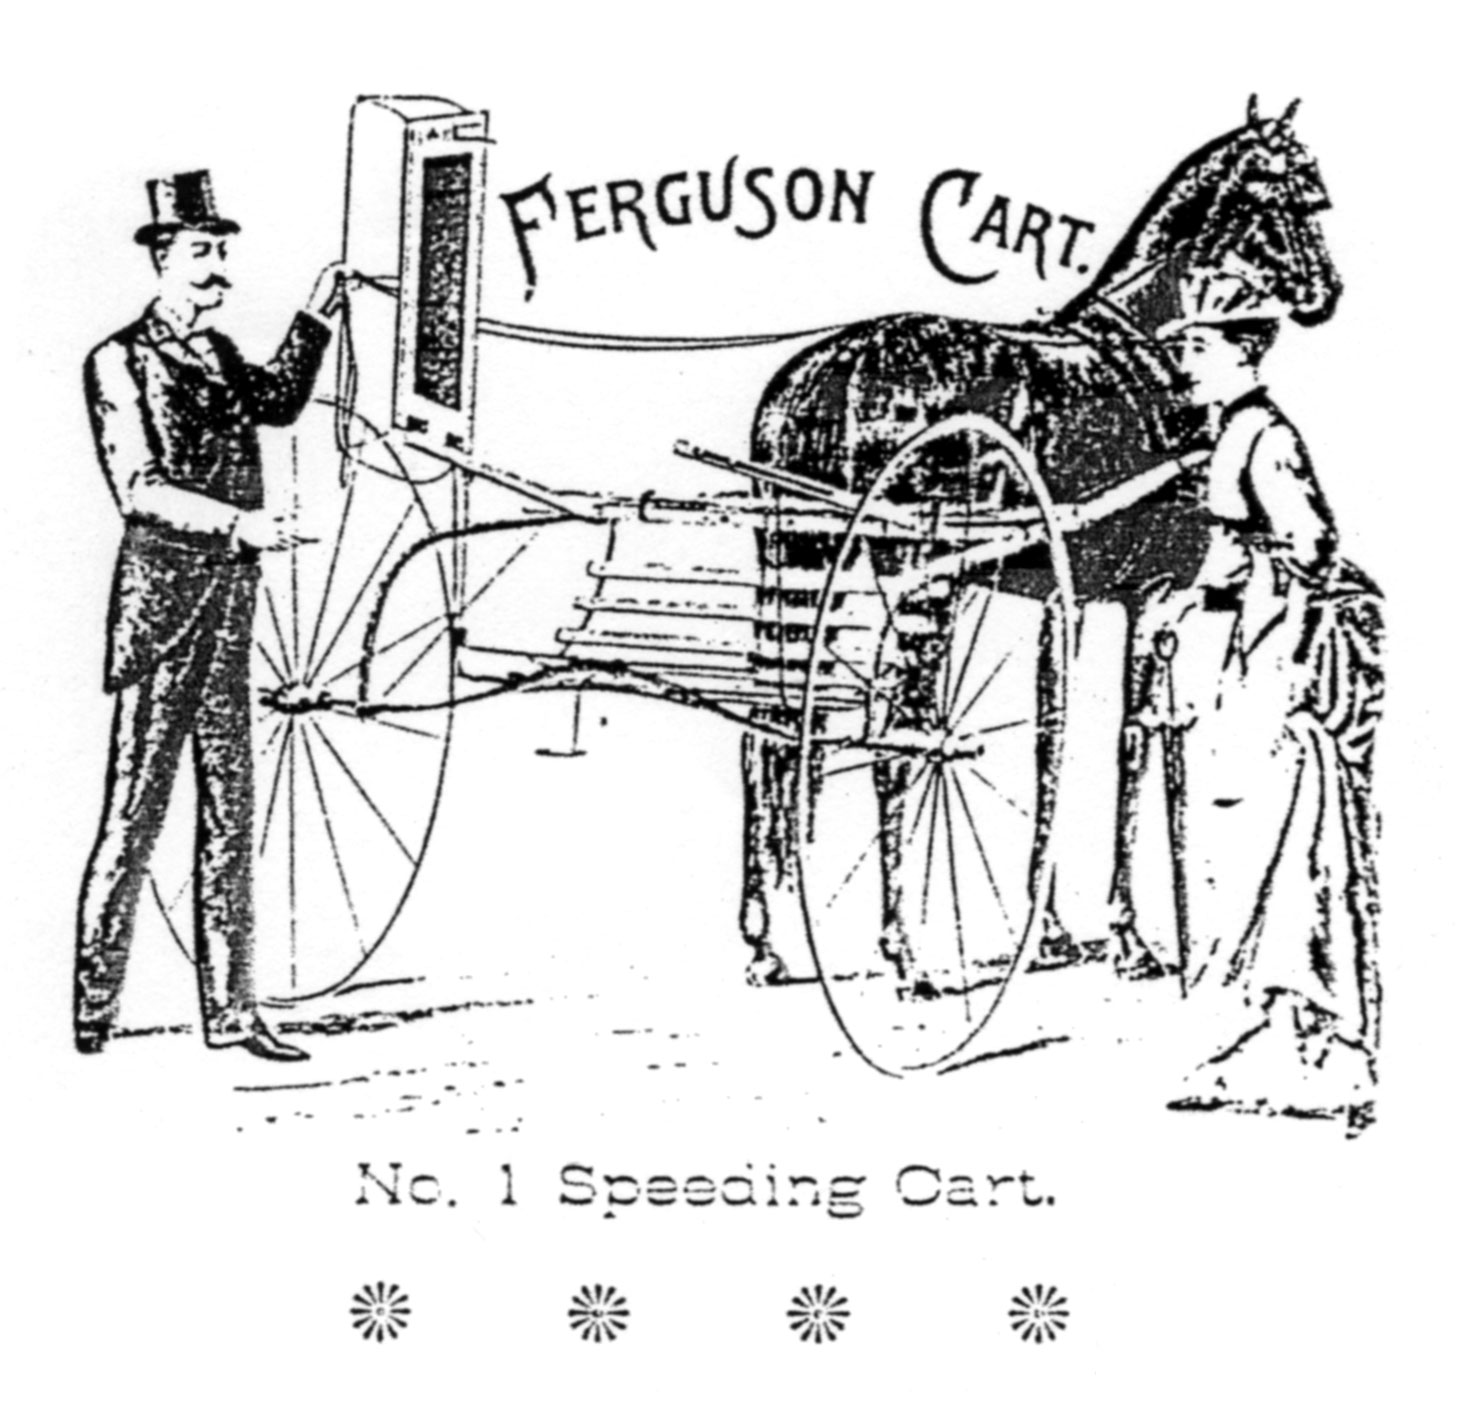 Ferguson No. 1 speeding cart image